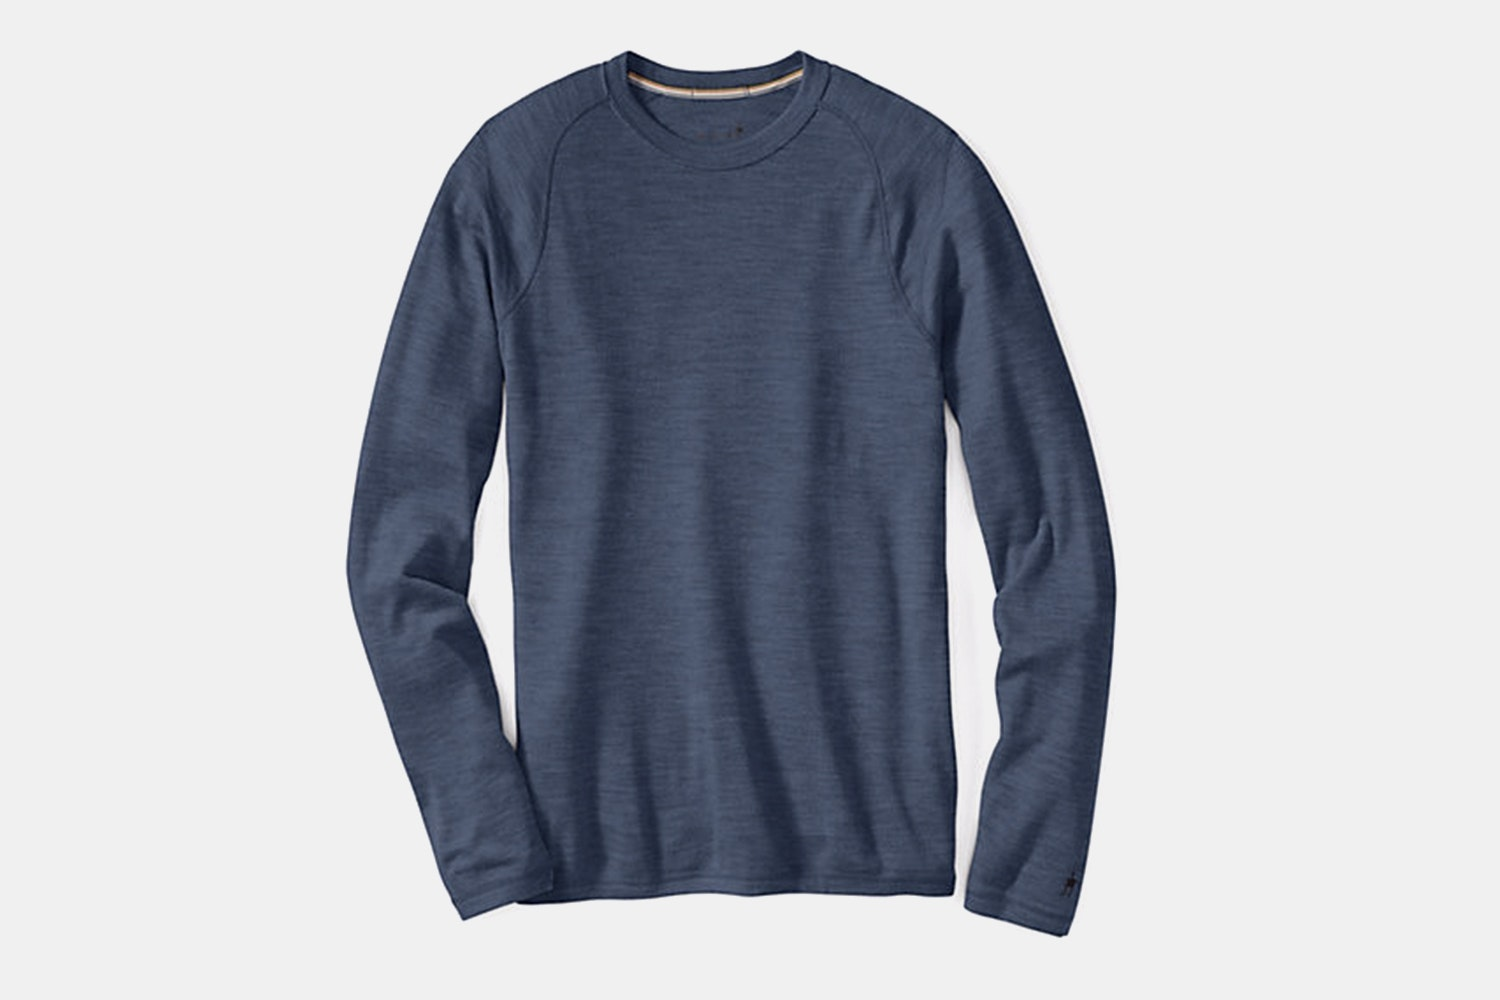 Men's, Dark Blue Steel Heather